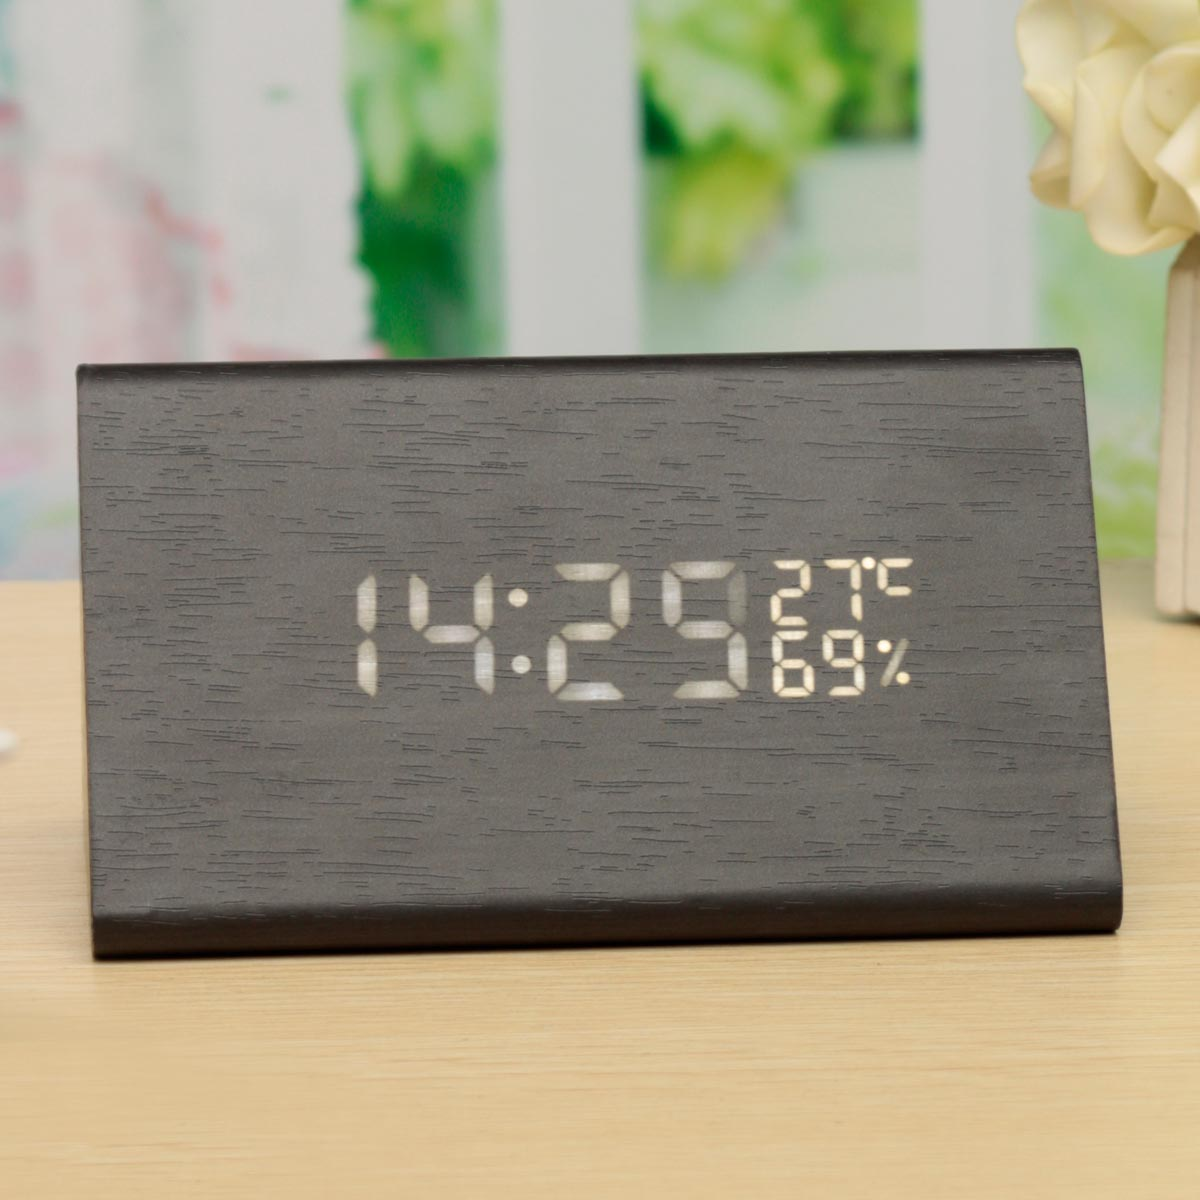 Wooden LED Digital Alarm Clock , SCOLMOREC Desk Alarm Clock Displays Time Date Temperature Humidity Sound Control for Kid, Home, Office, Daily Life